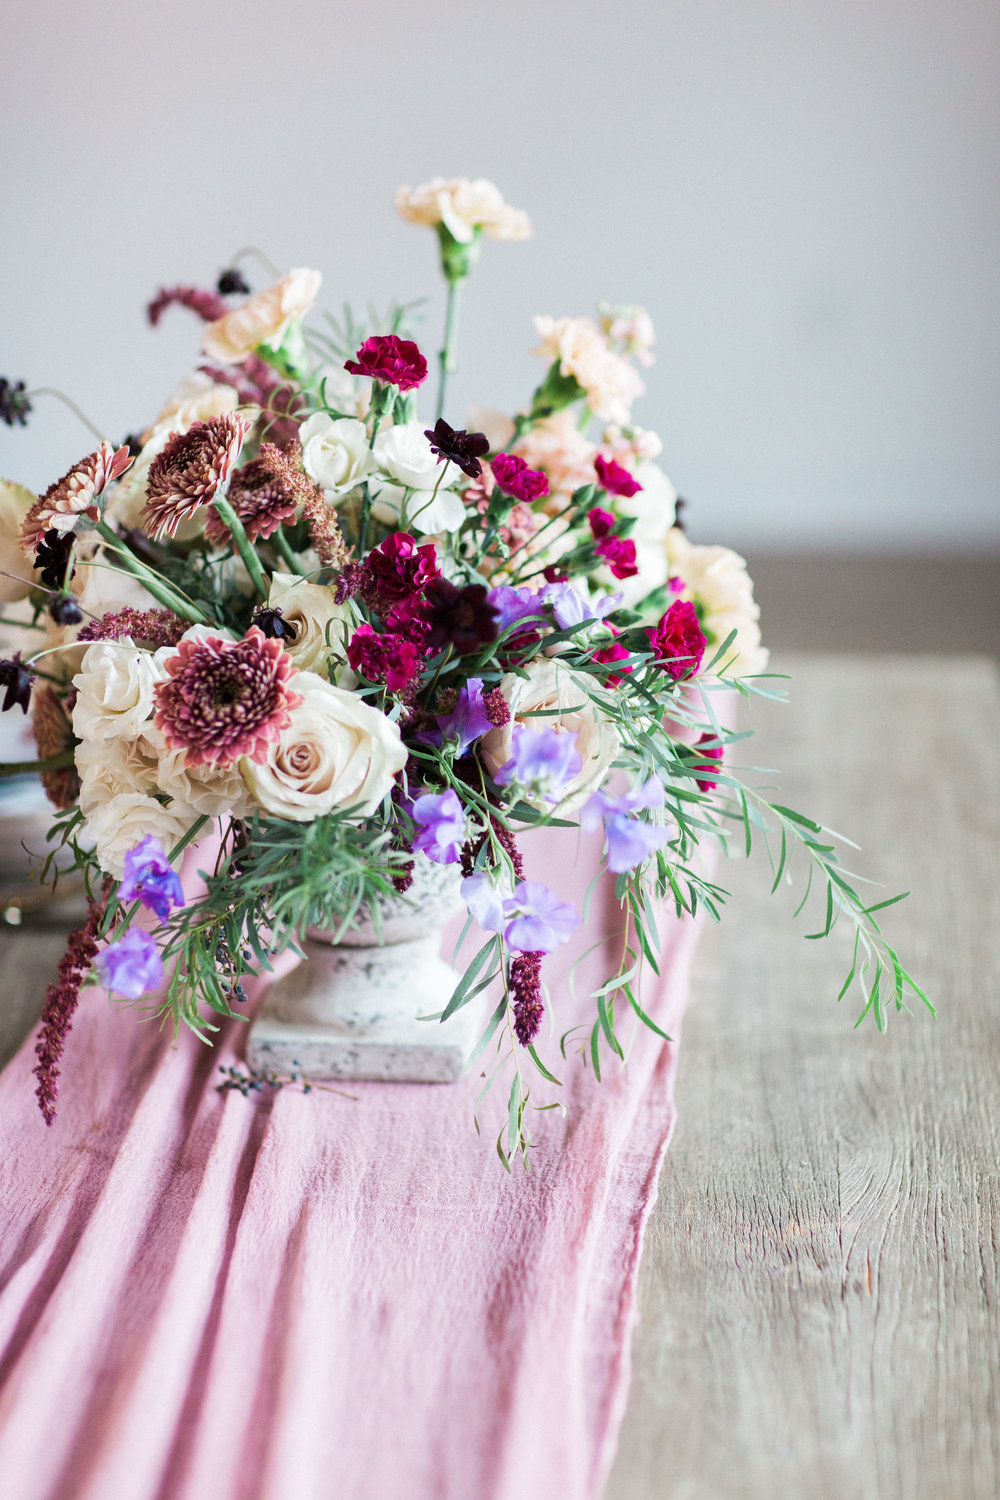 Mauve and Lavender Modern Wedding Inspiration - Centerpiece